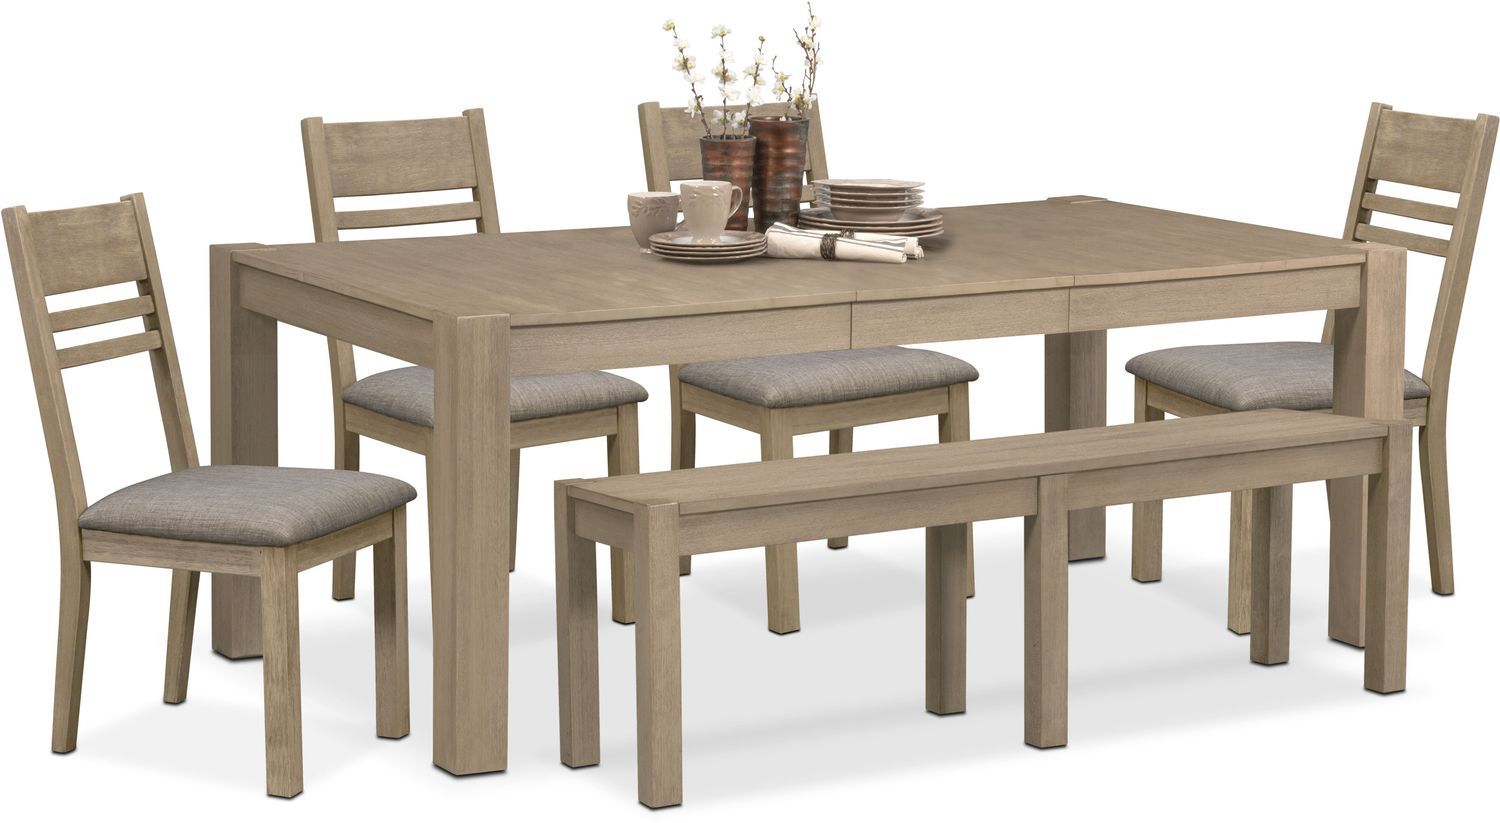 Prime Tribeca Table 4 Side Chairs And Bench Gray Products In Bralicious Painted Fabric Chair Ideas Braliciousco